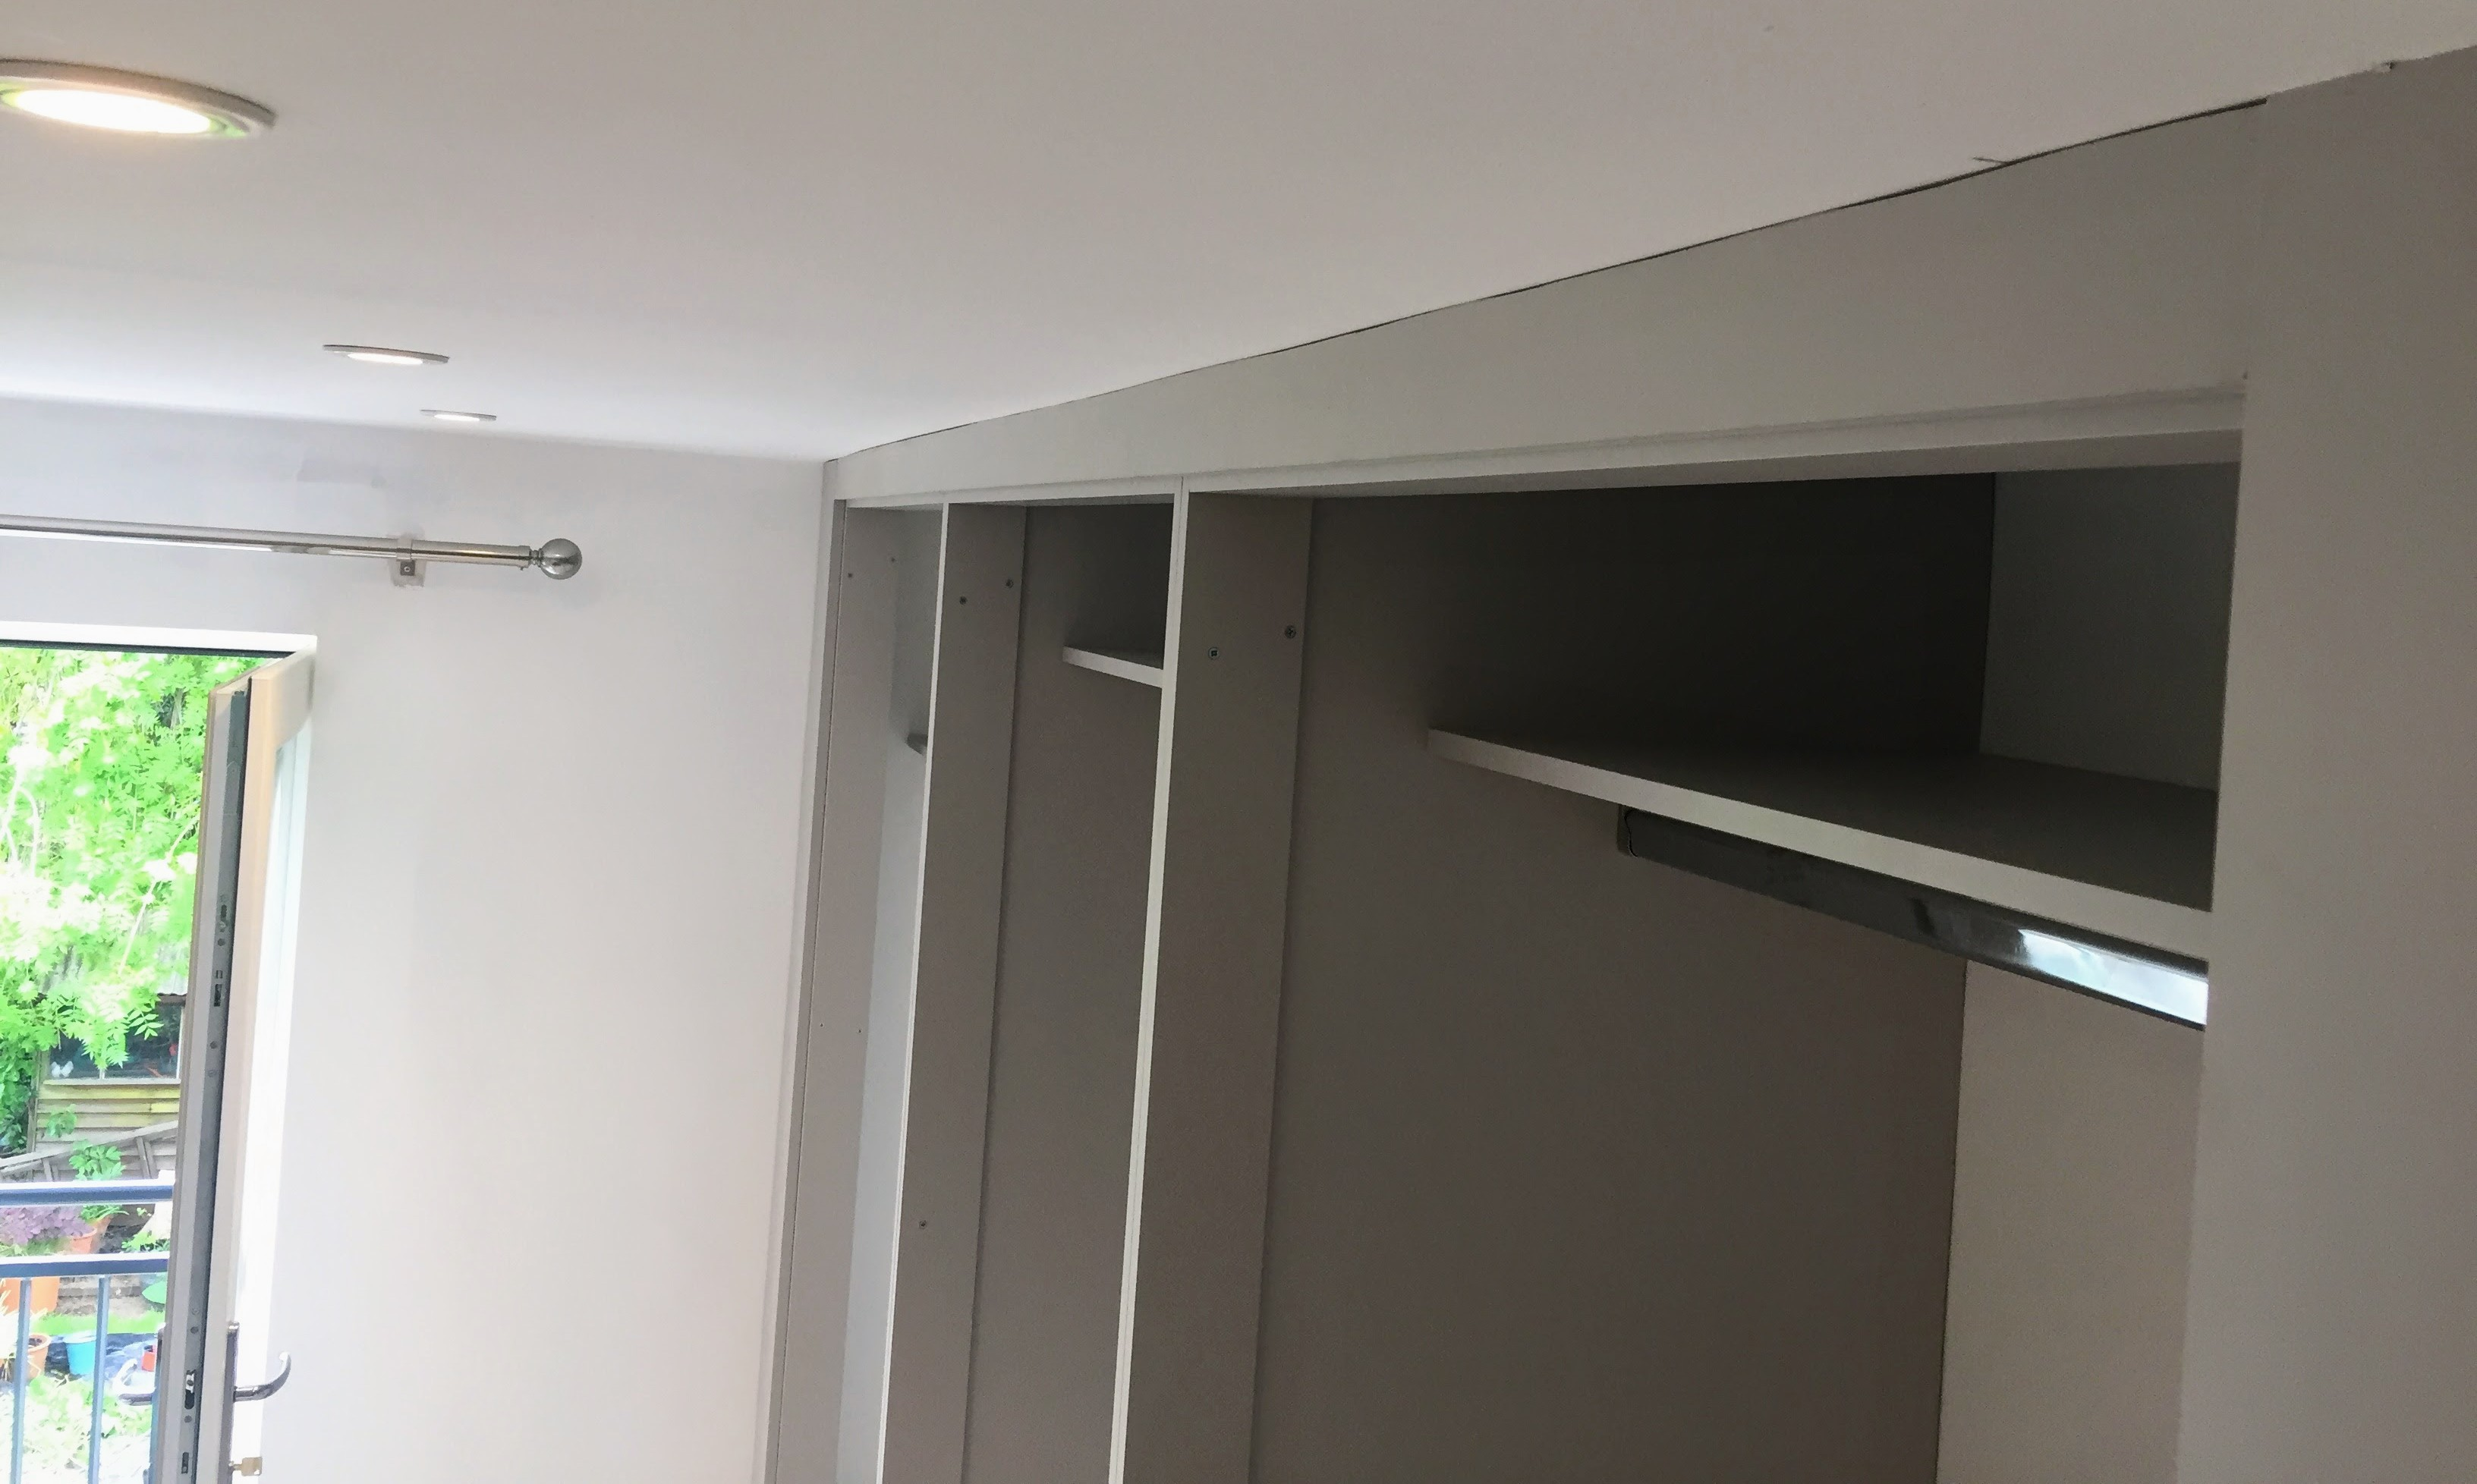 Wardrobe (shelf, rail, scribe)